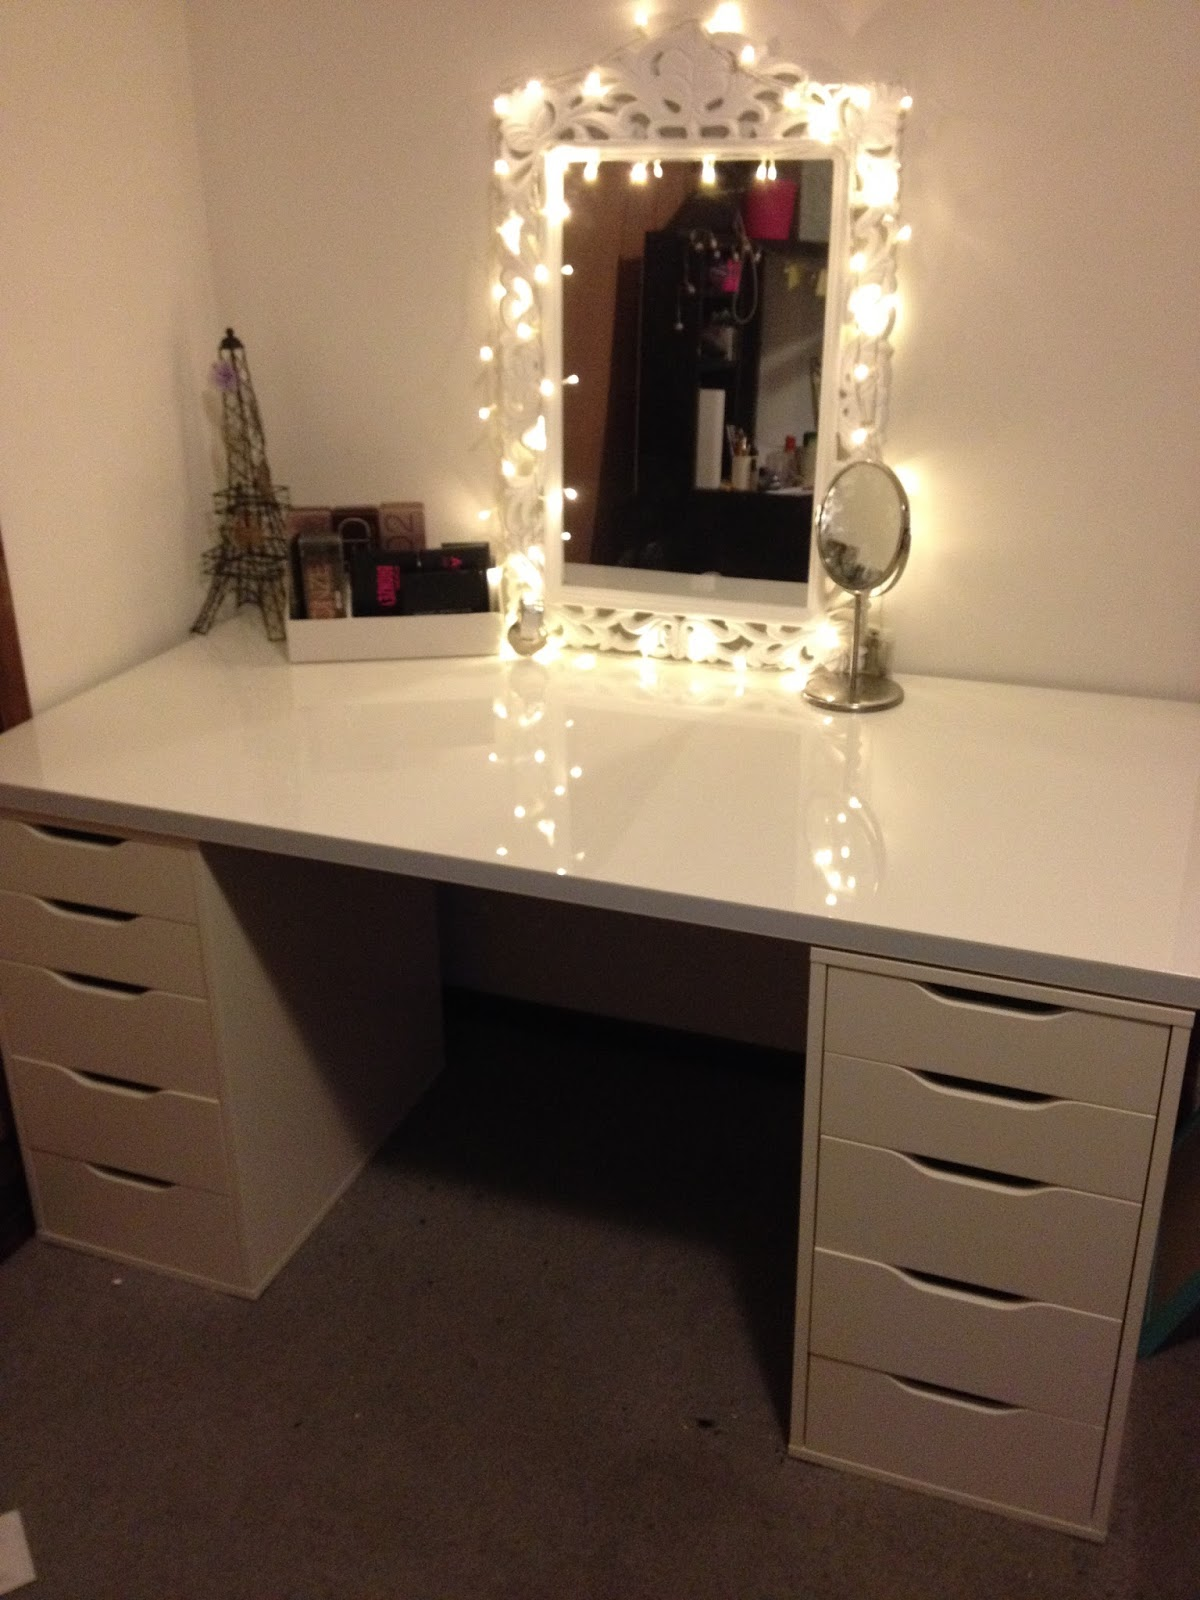 How High To Set Vanity Lights : My Vanity/Makeup Setup ~ ProcrastiCaitlan